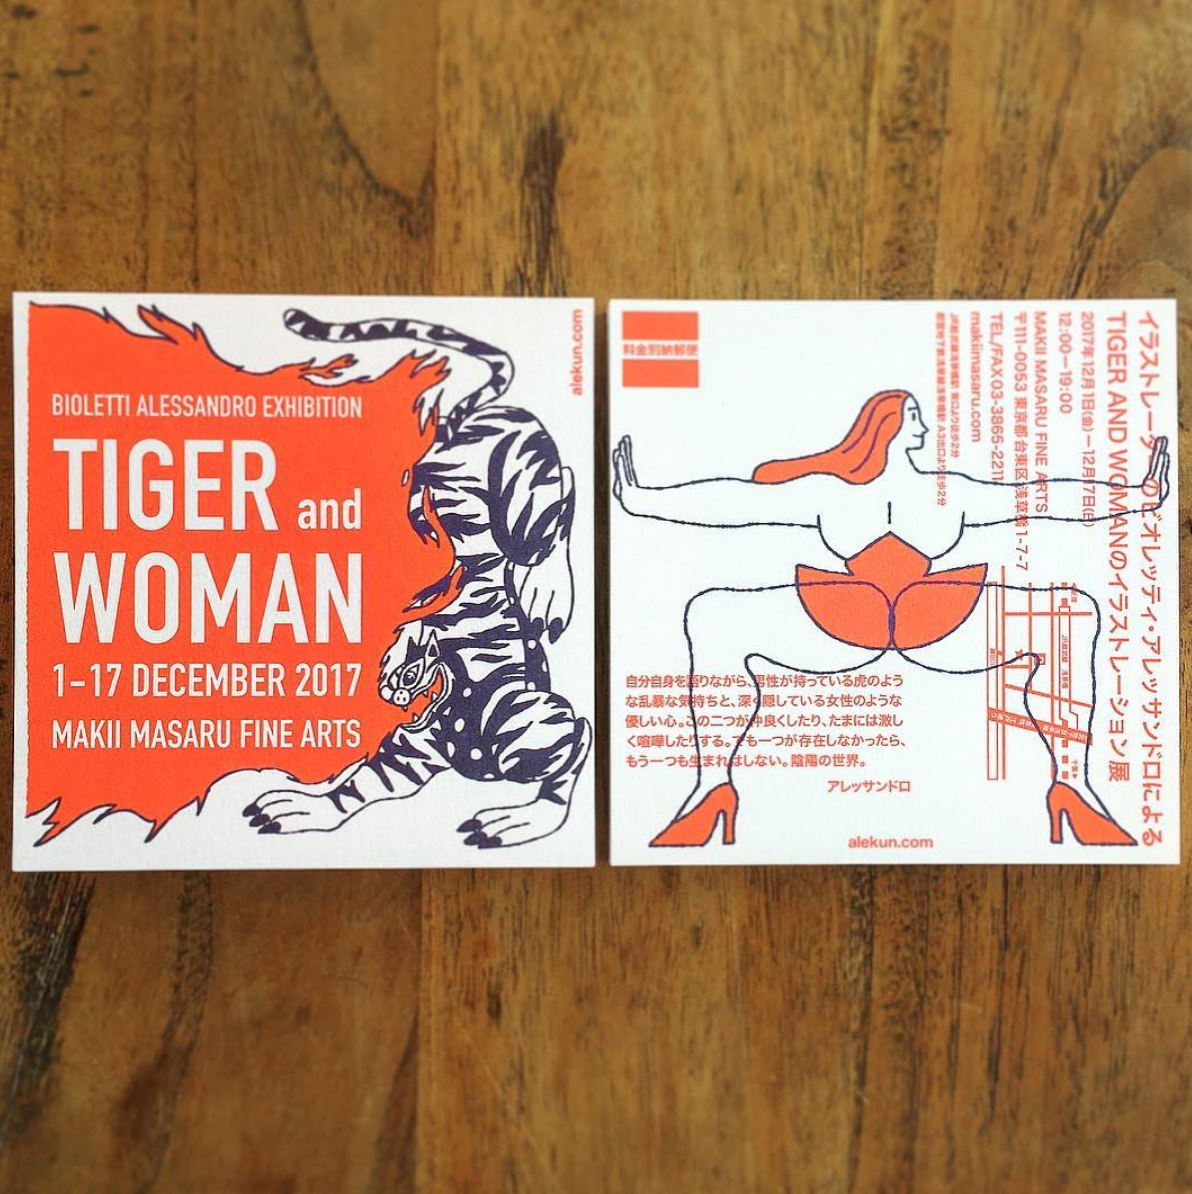 『TIGER and WOMAN』 solo exhibition